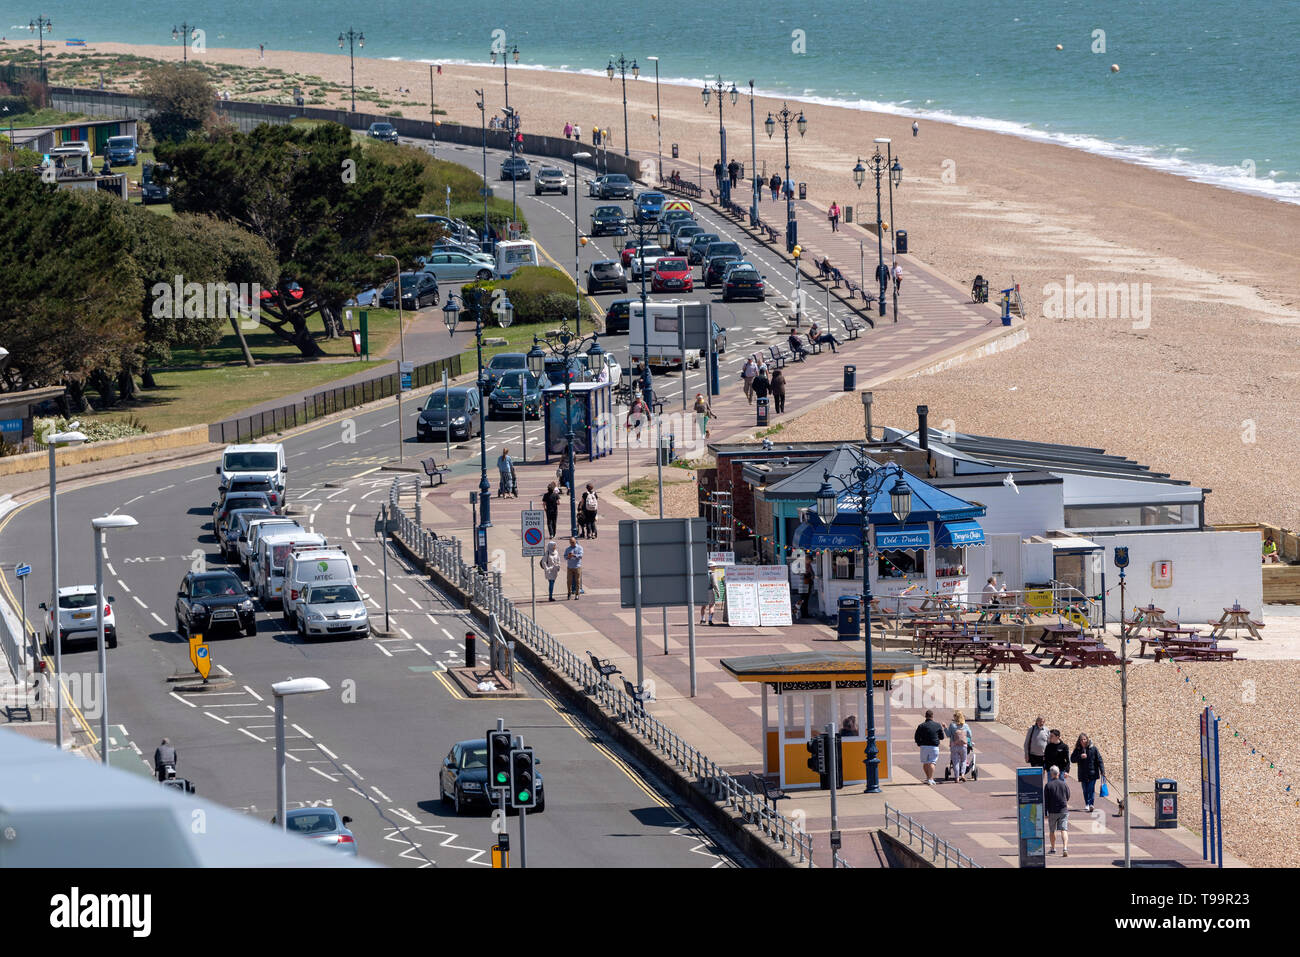 Southsea, Portsmouth, England, UK. May 2019. An overview of the Southsea resort coastal road and shingle beach - Stock Image